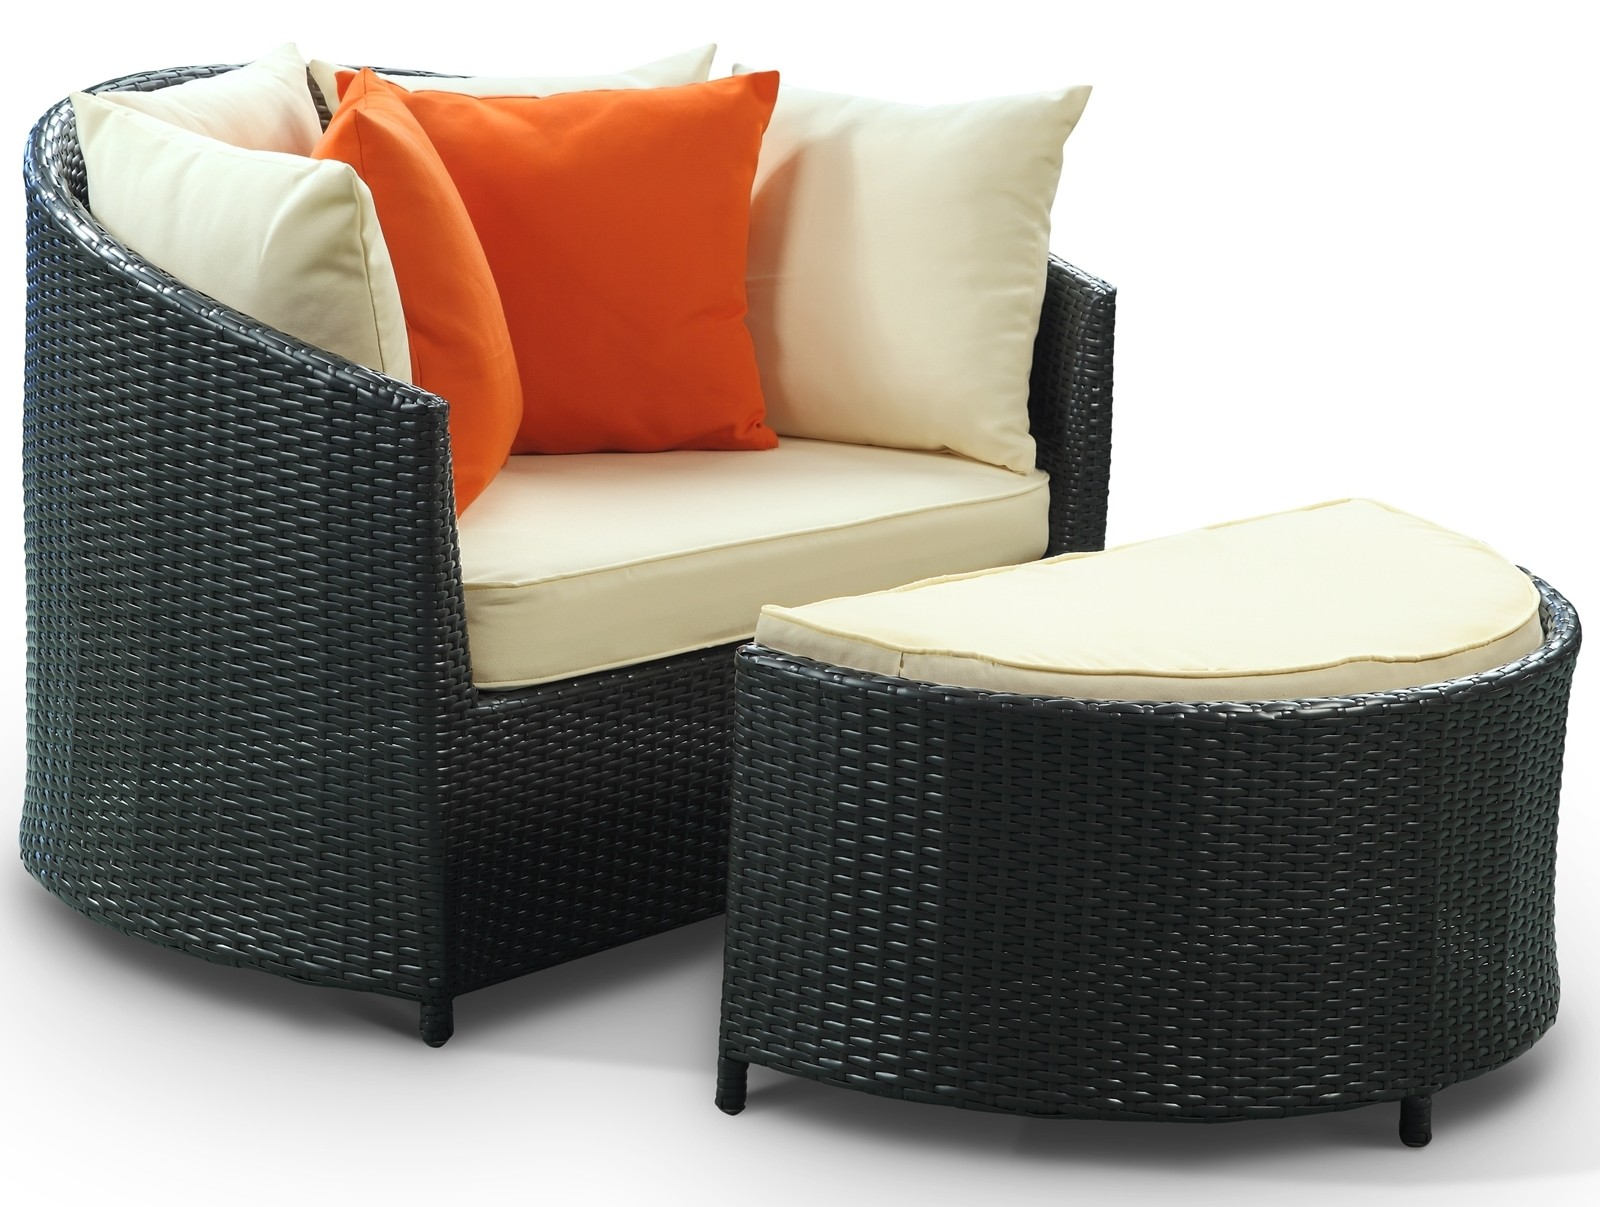 Robin s Nest Outdoor Rattan Lounge Chair with Ottoman from Renegade EEI